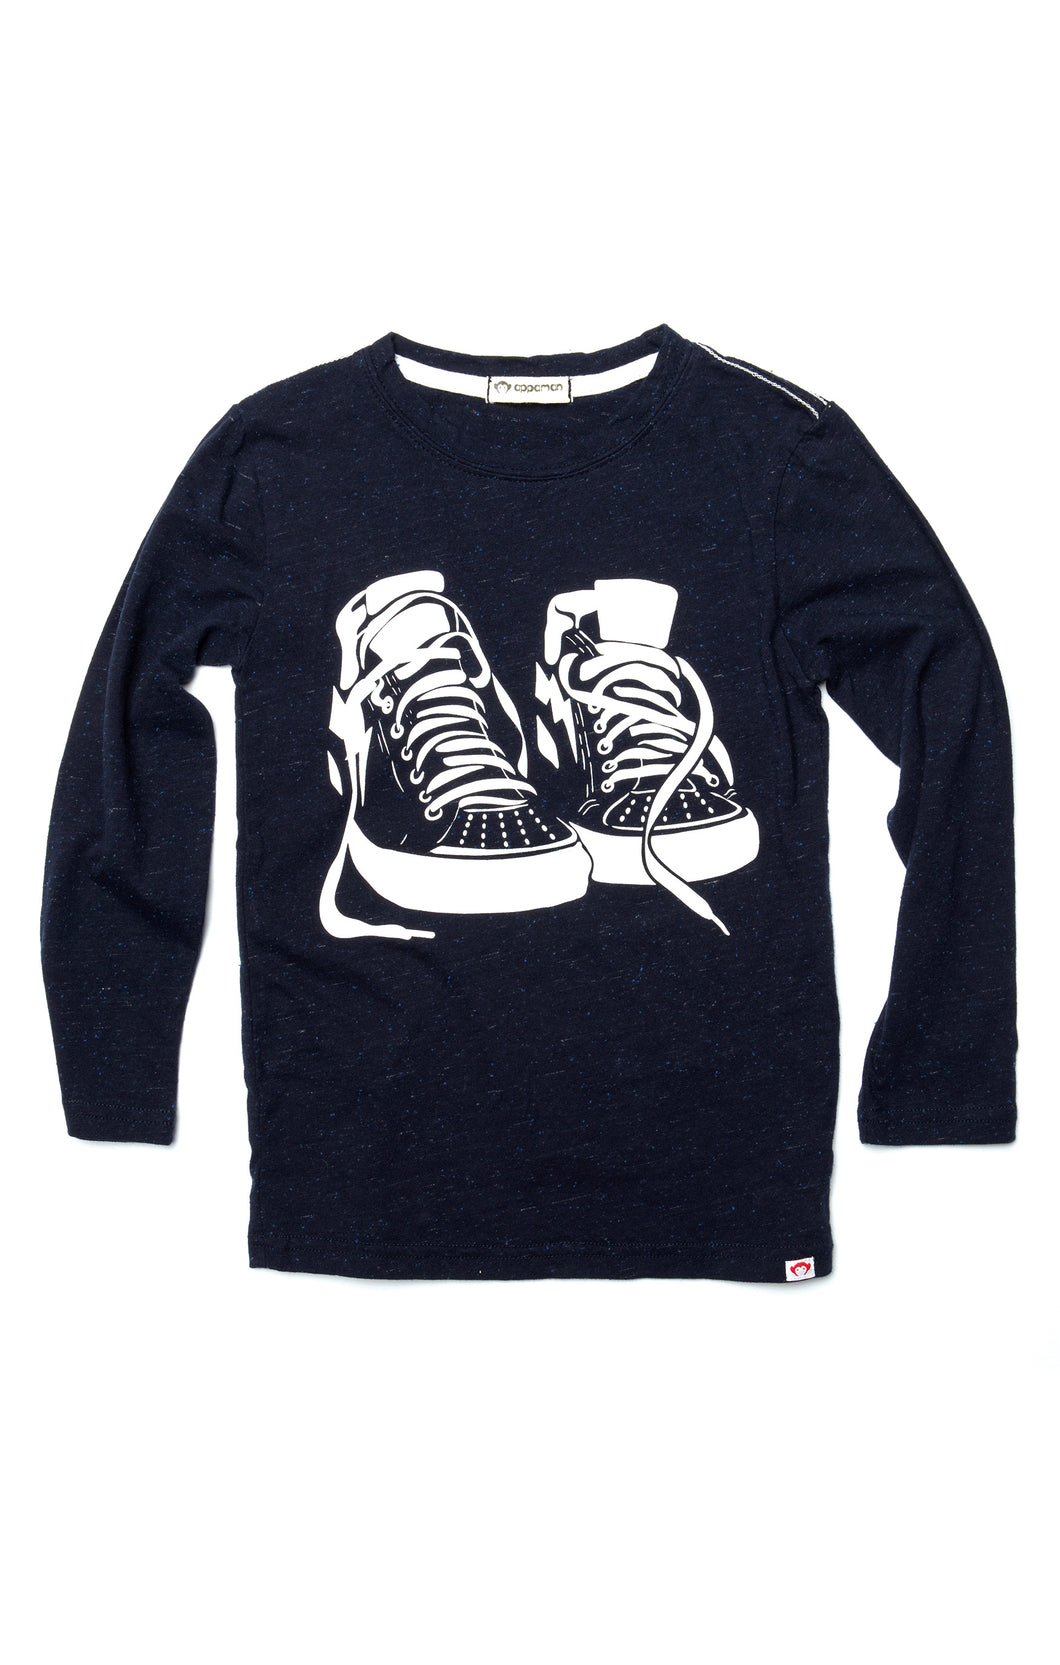 Graphic Long Sleeve Tee - Sneaker Game